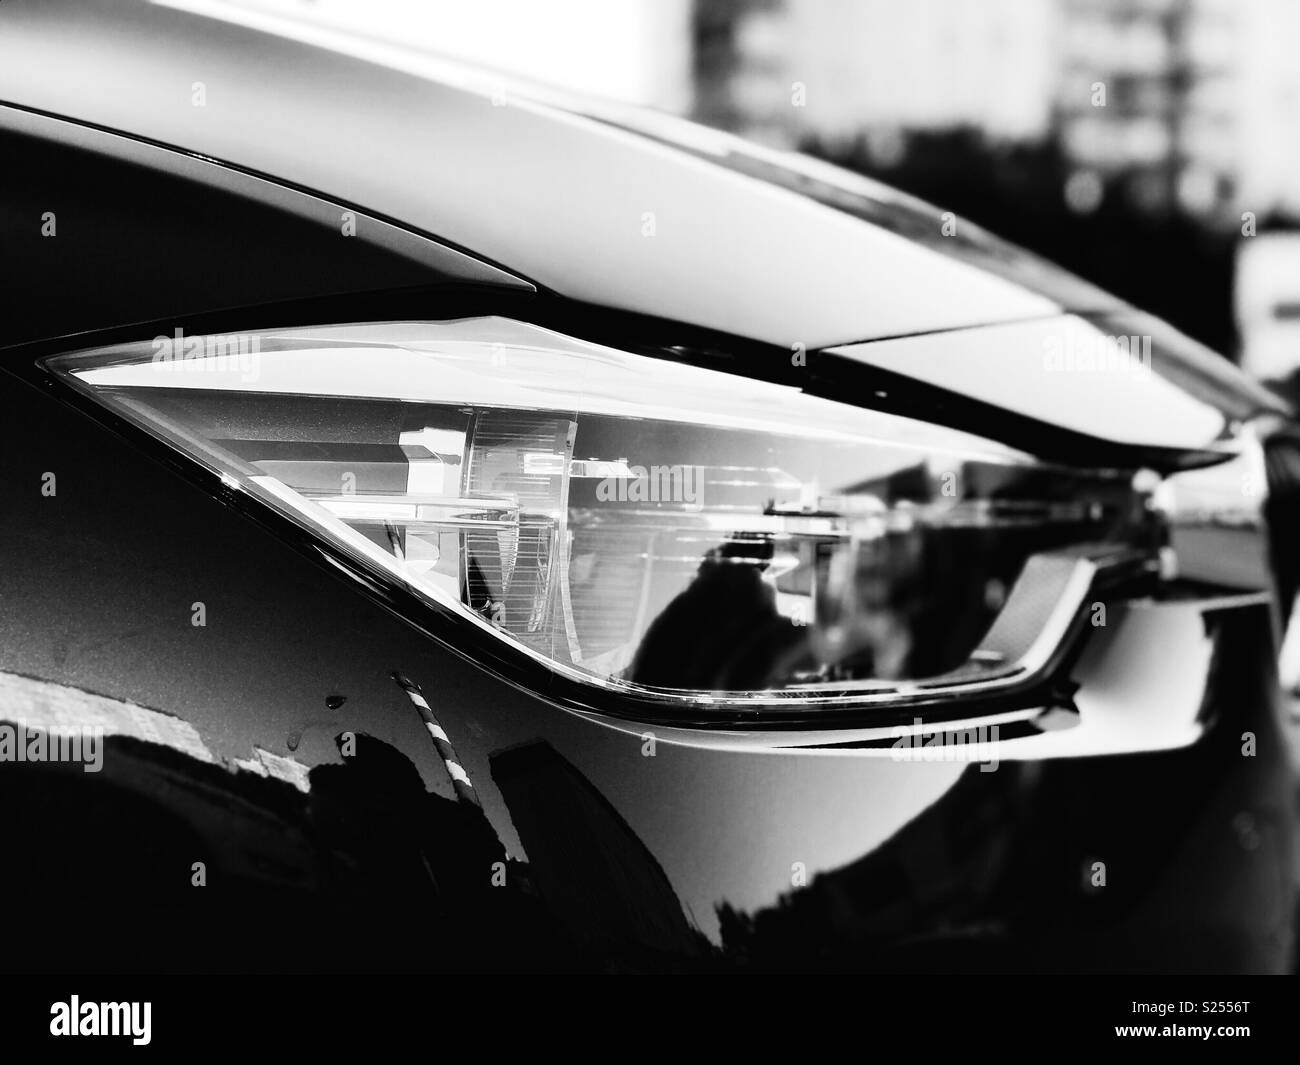 Moscow, Russia - June 24, 2018: BMW 3 Series headlight in monochrome - Stock Image